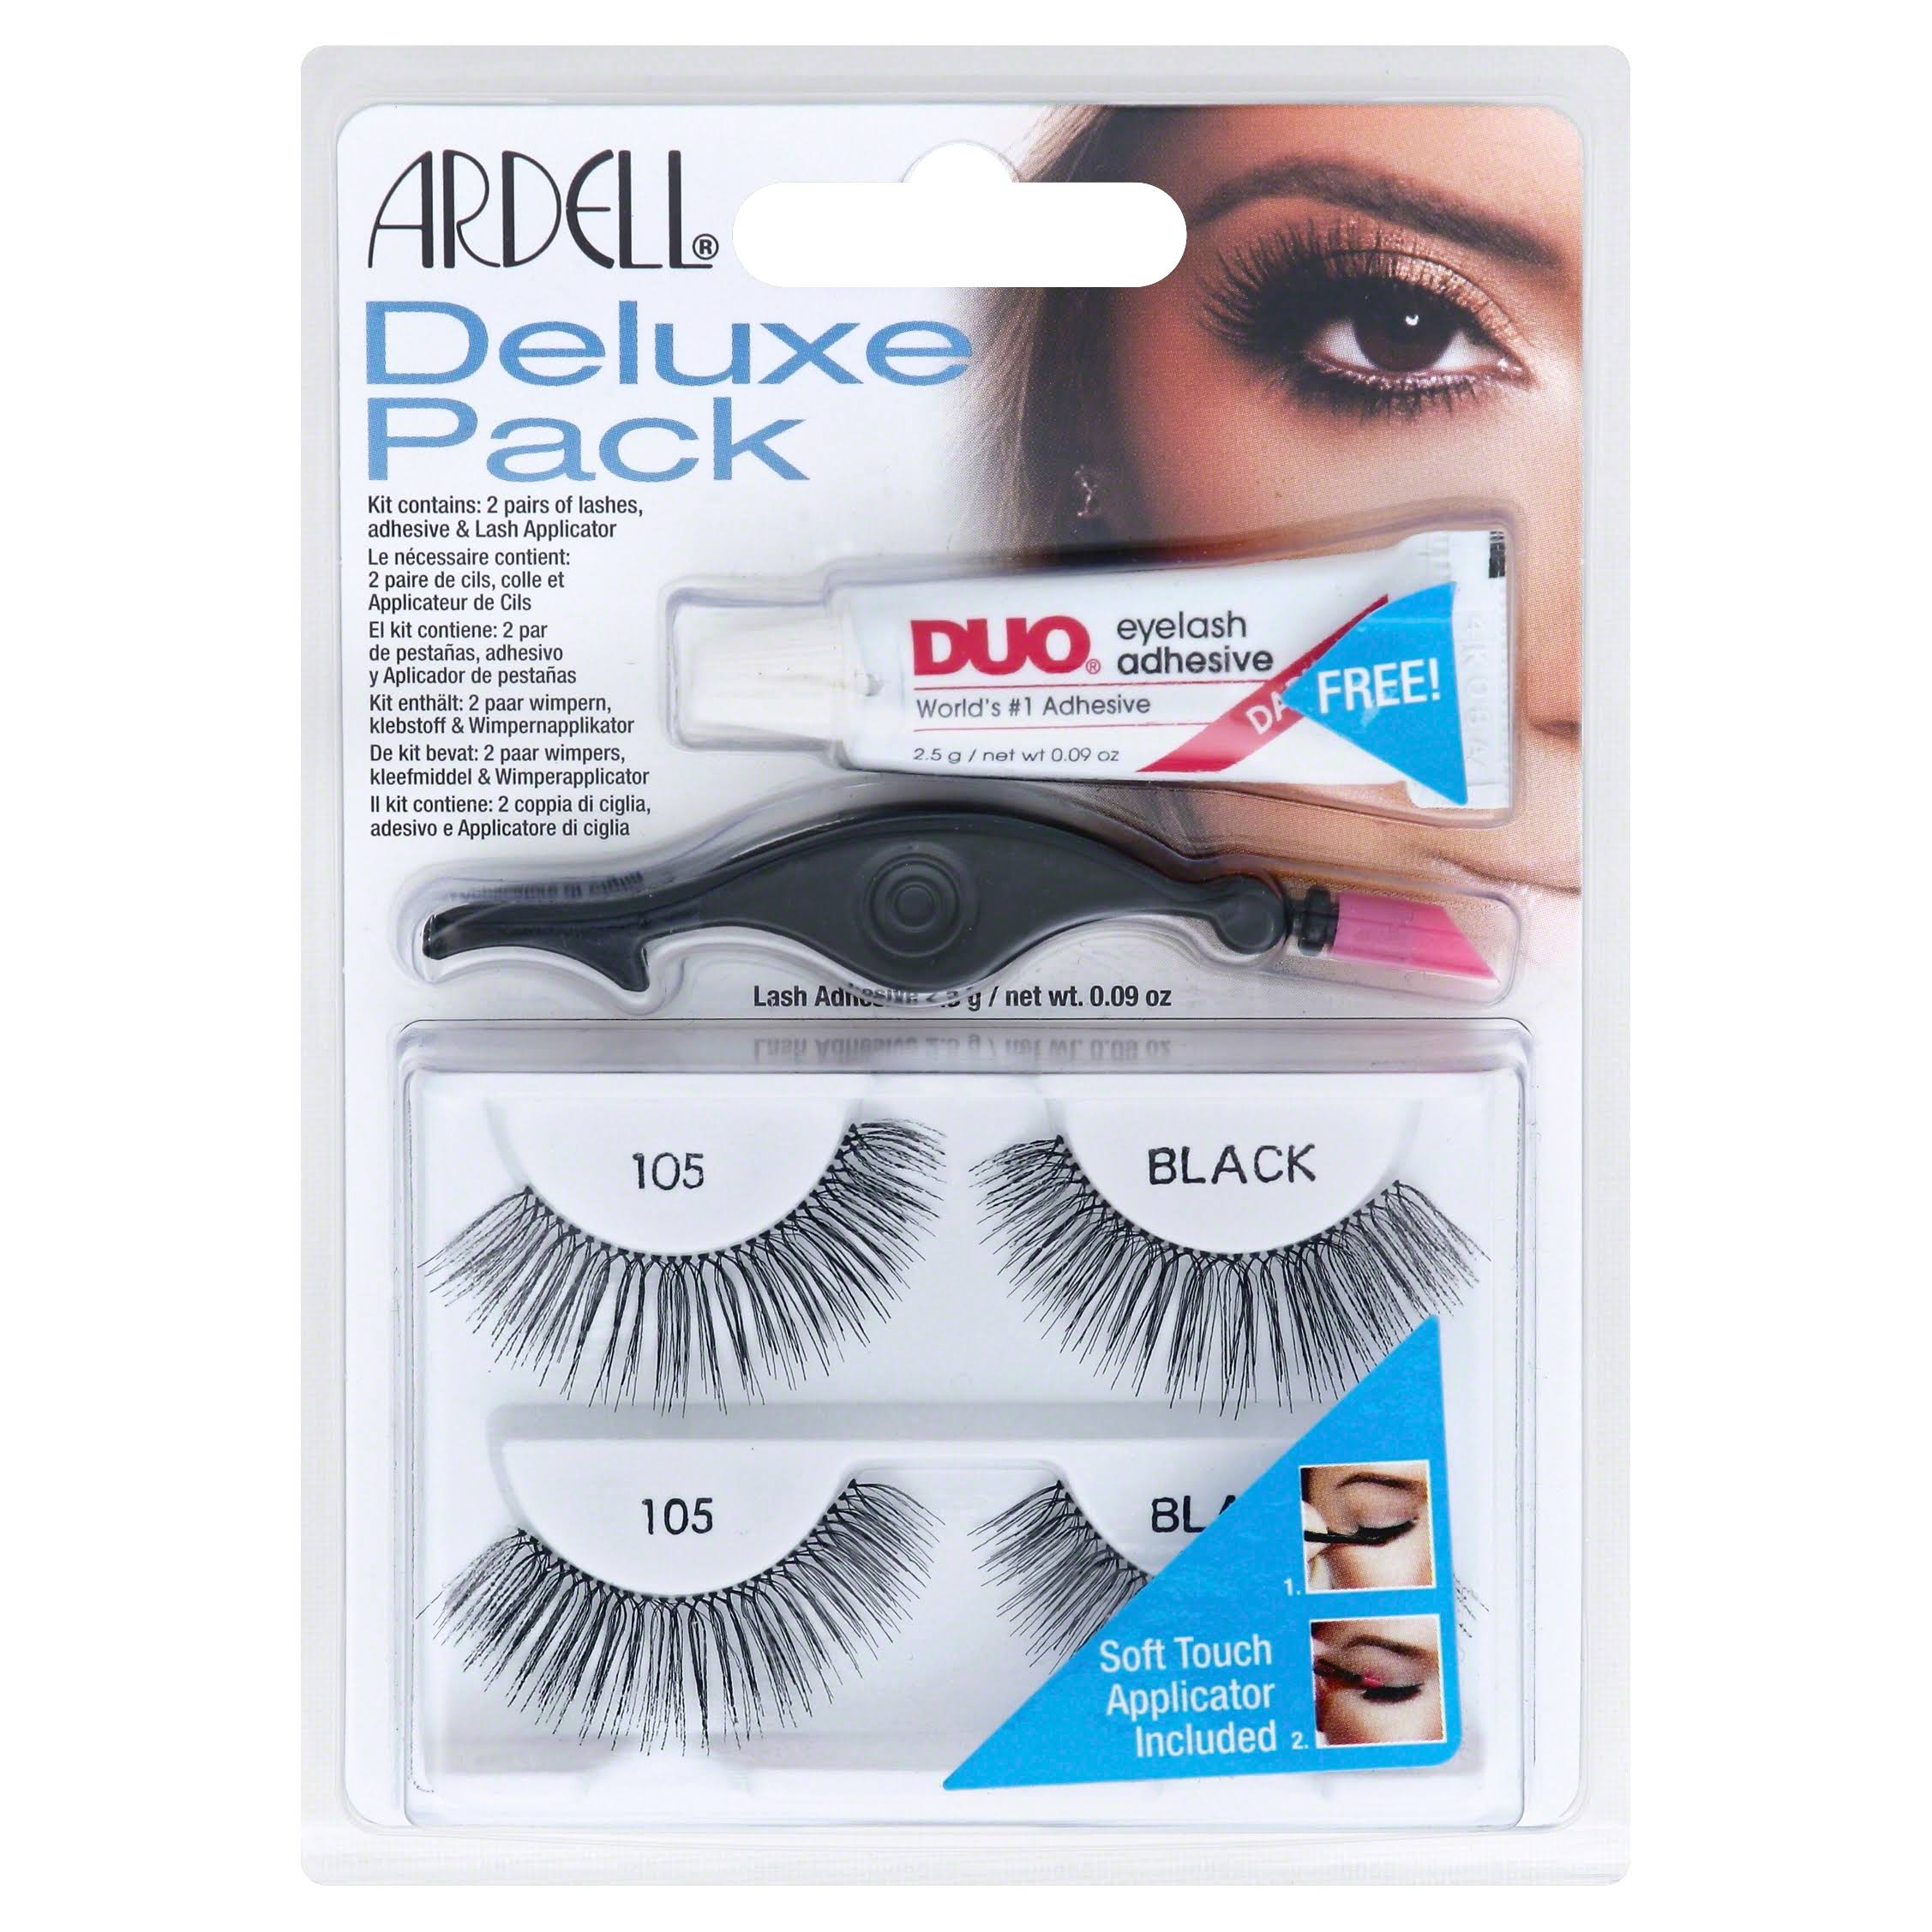 Ardell Deluxe Pack Lashes - with Adhesive, 105 Black